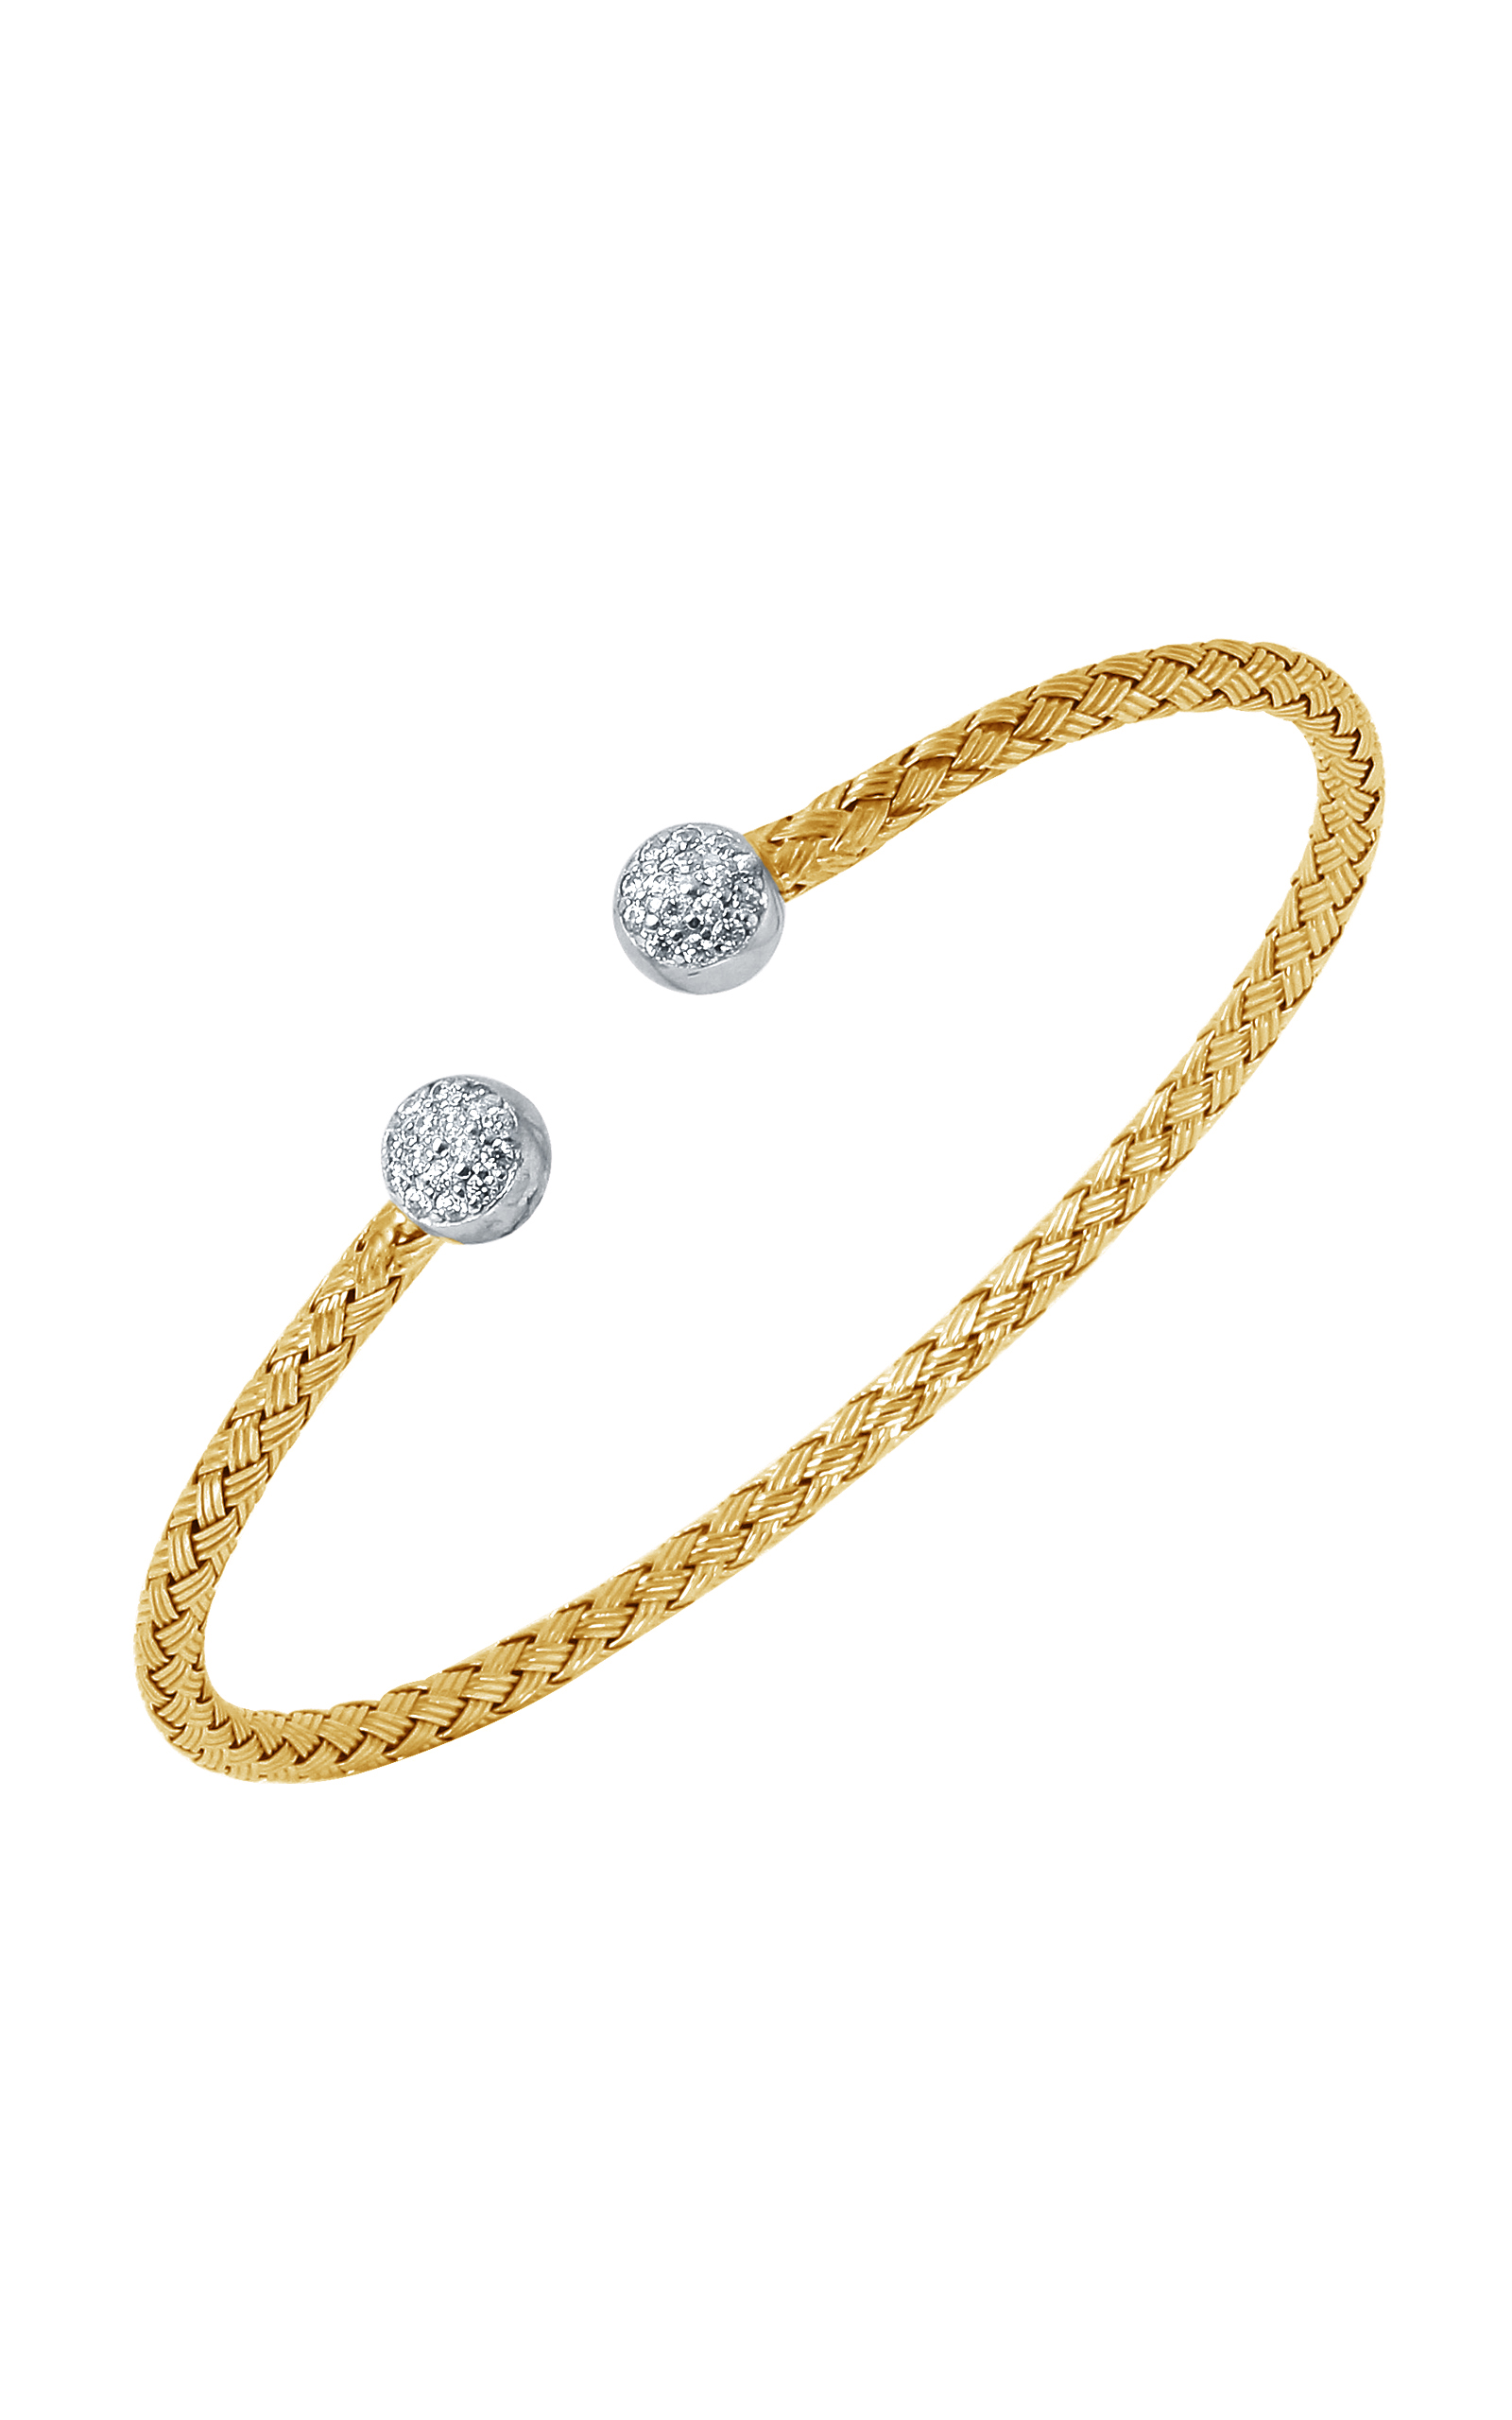 Charles Garnier Bracelet Paolo Collection MLC8205YWZ product image